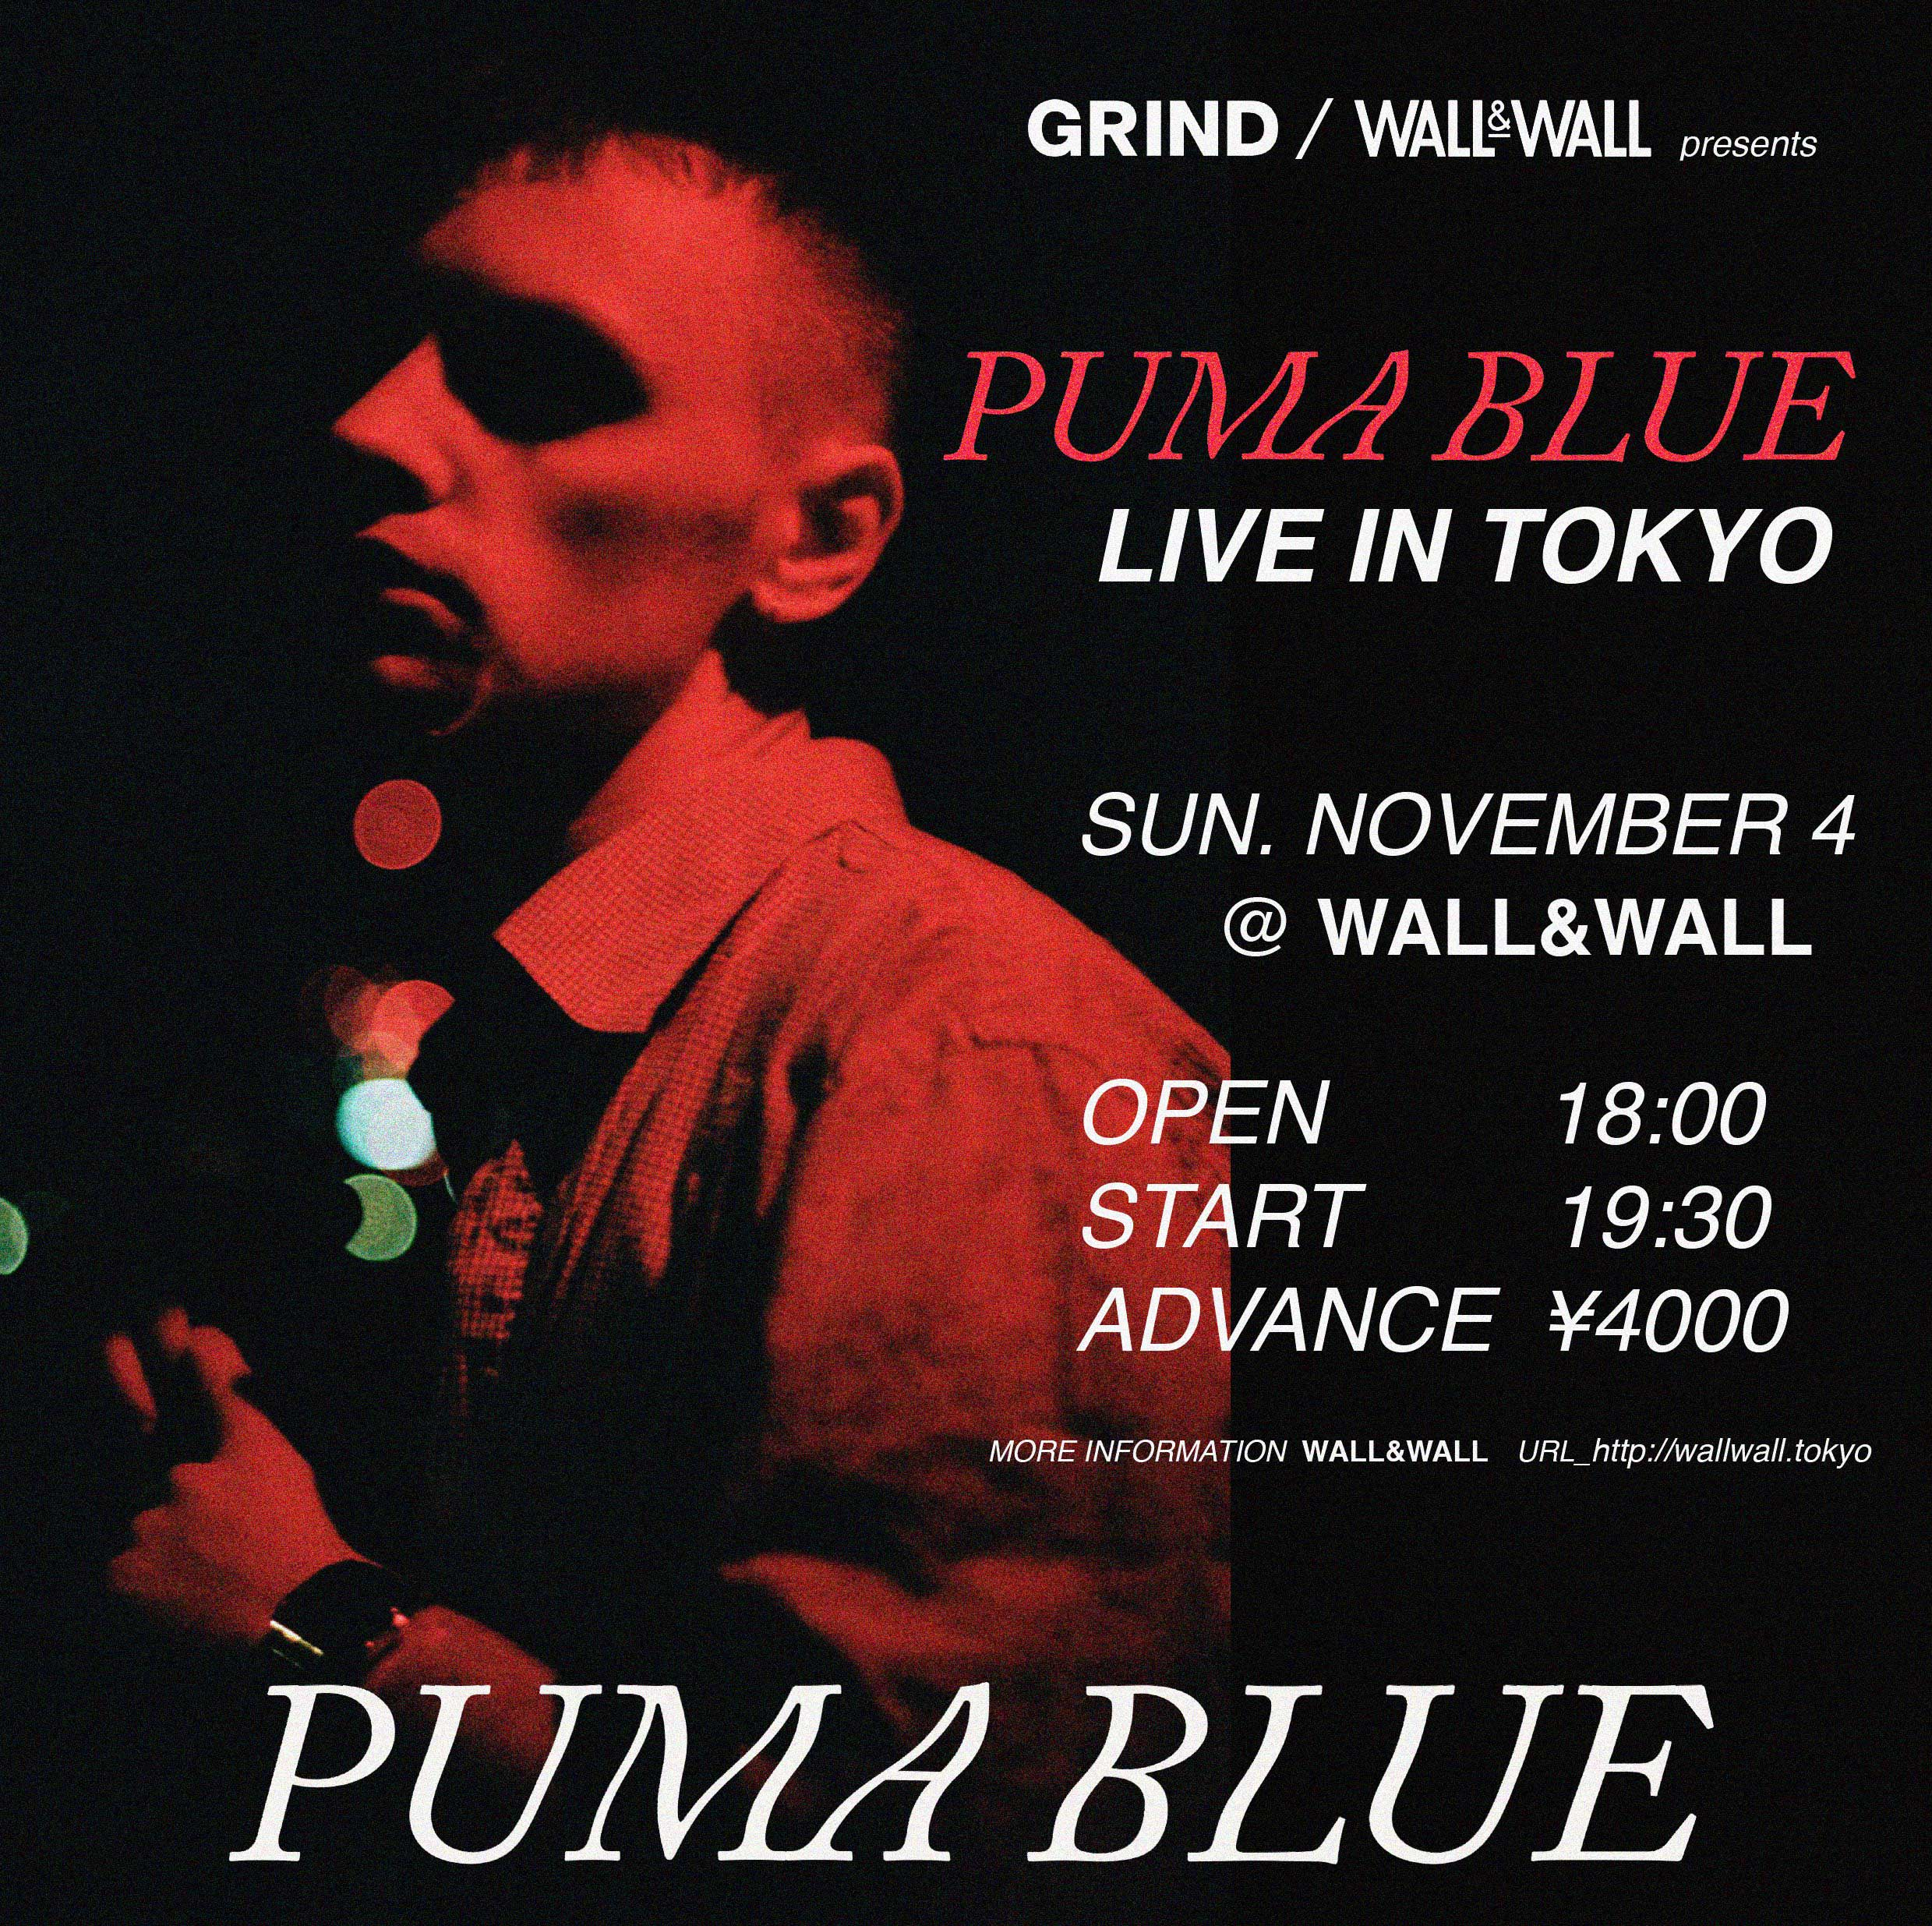 GRIND / WALL&WALL Presents 「PUMA BLUE LIVE IN TOKYO」